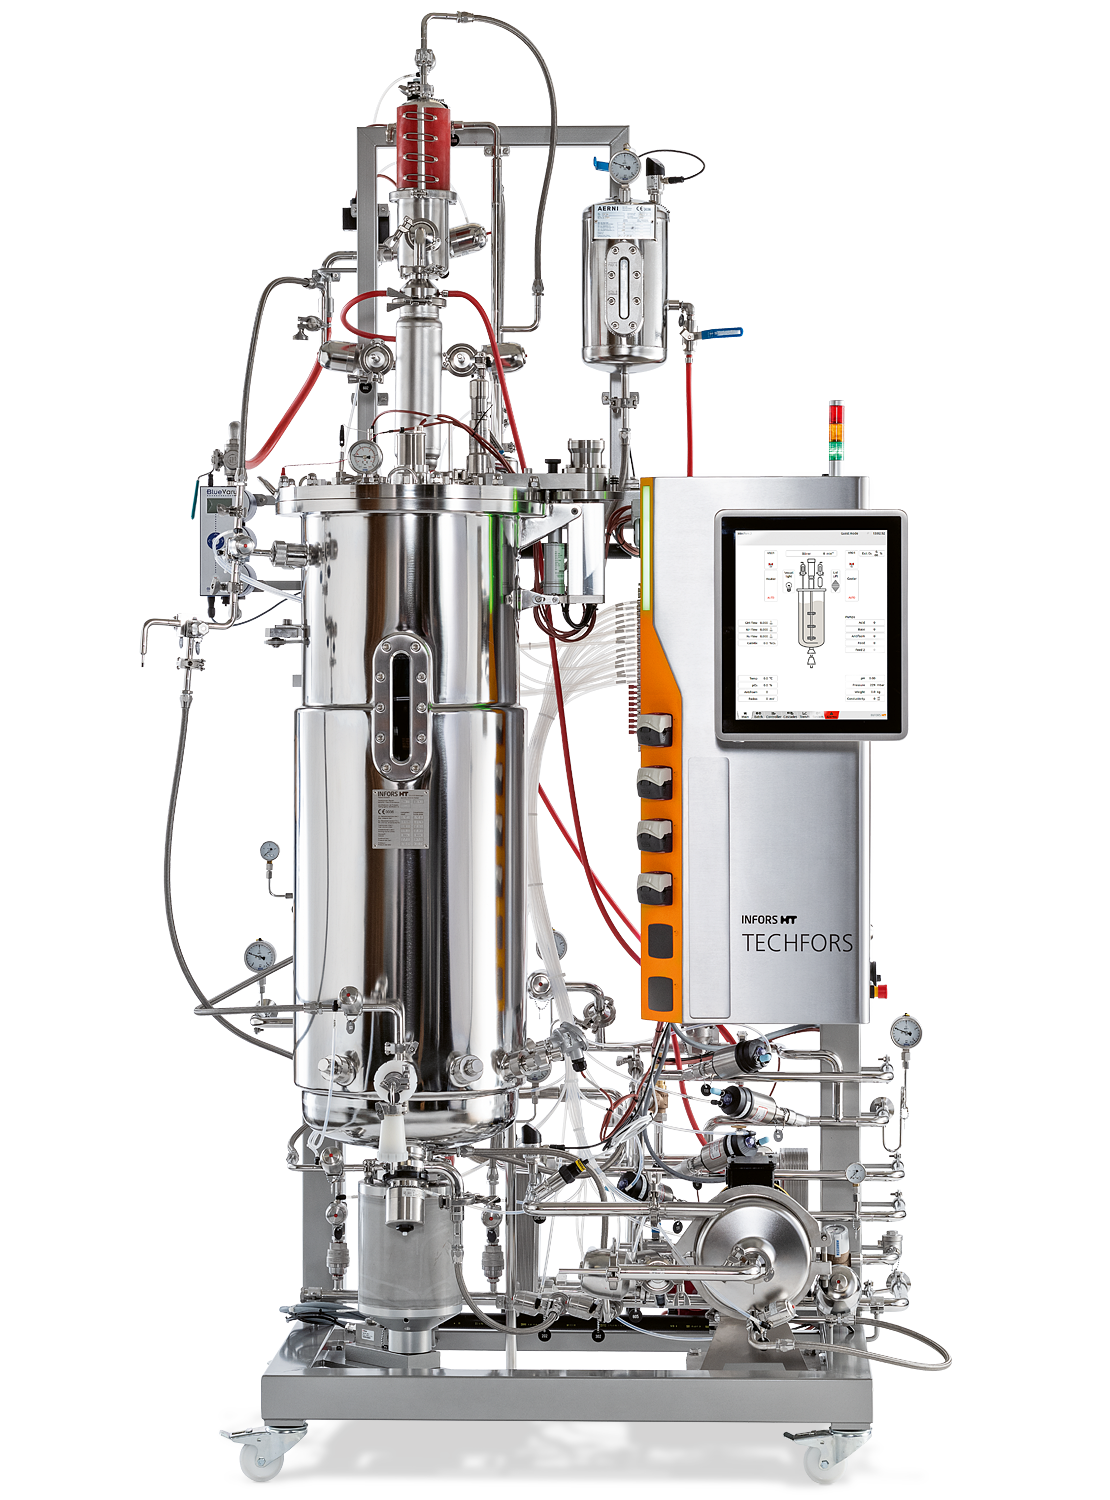 INFORS HT launches new version of the Techfors pilot bioreactor 10/3/2019